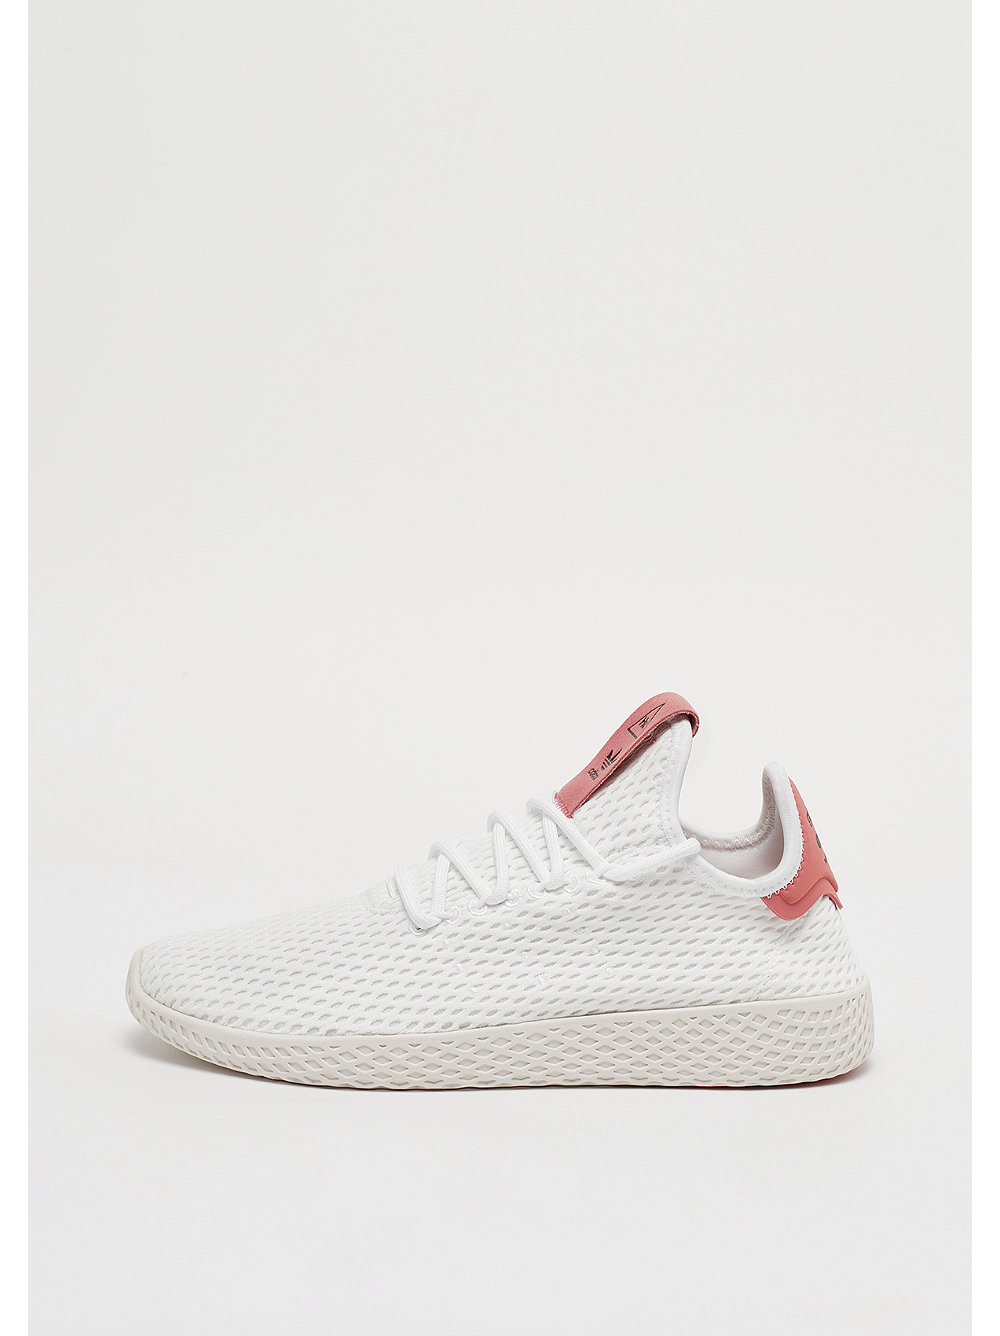 adidas pharrell williams tennis hu white snipes onlineshop. Black Bedroom Furniture Sets. Home Design Ideas